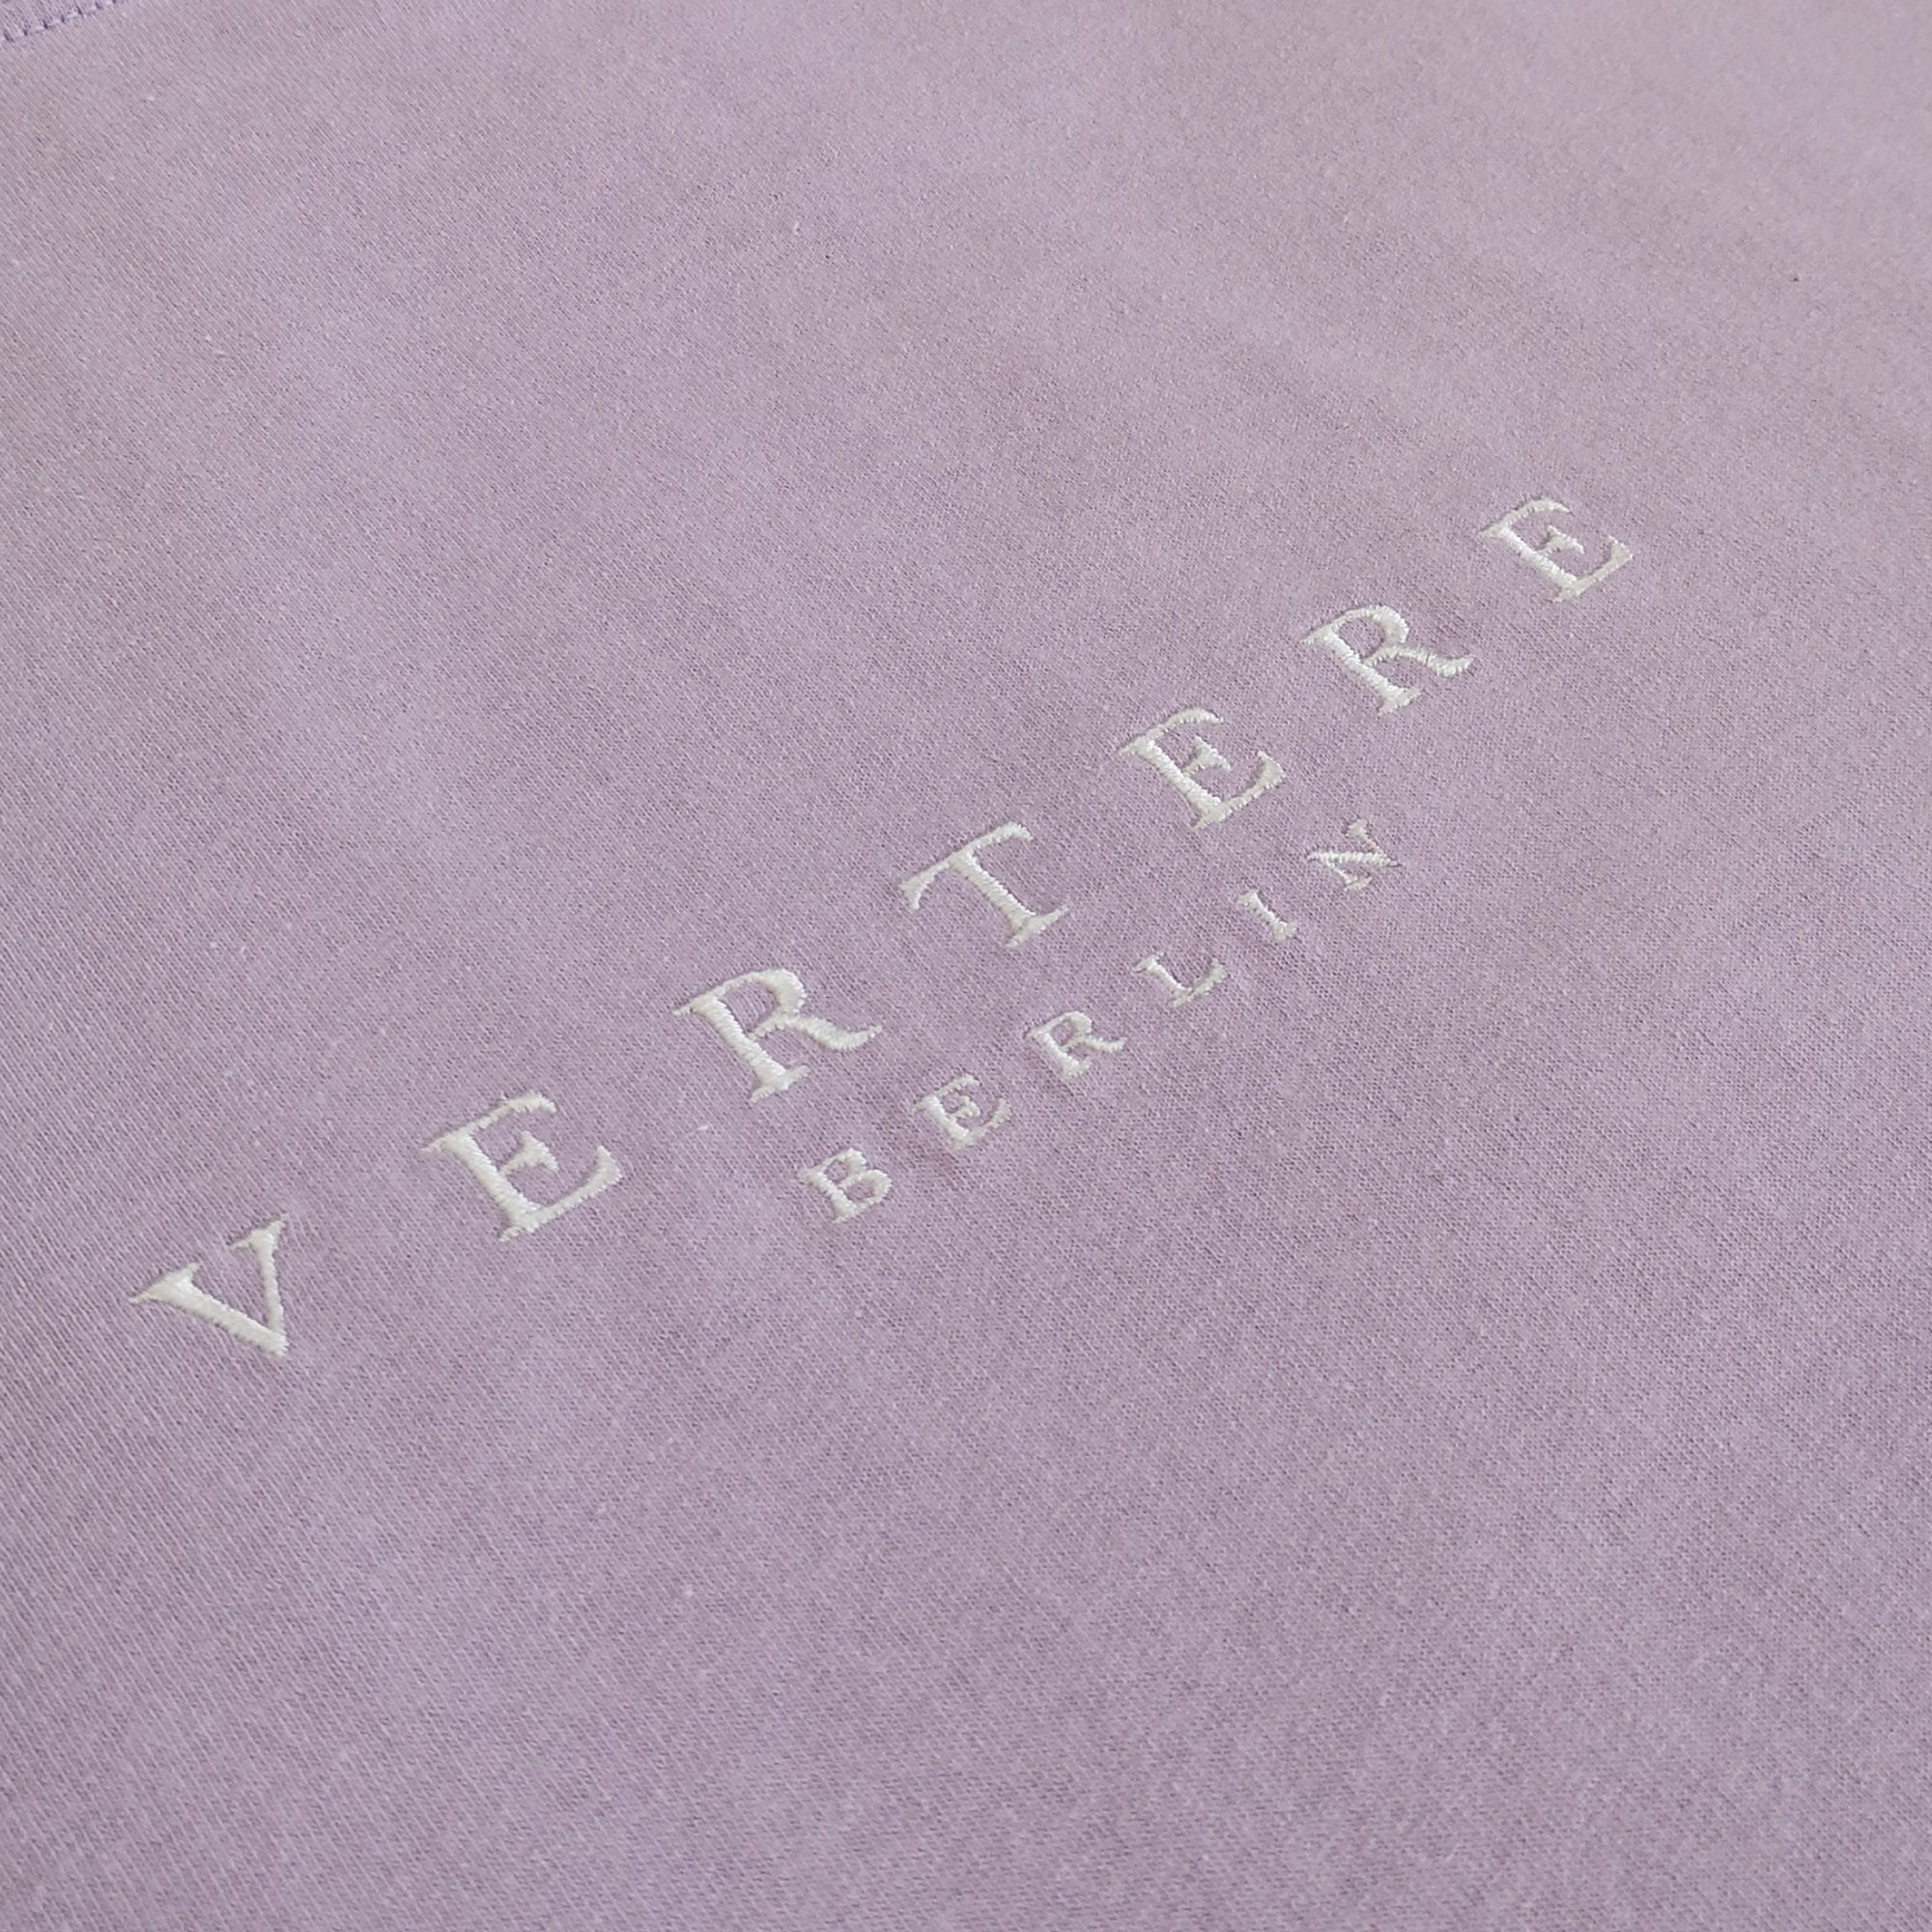 VERTERE BERLIN T-SHIRT - LIGHTPURPLE